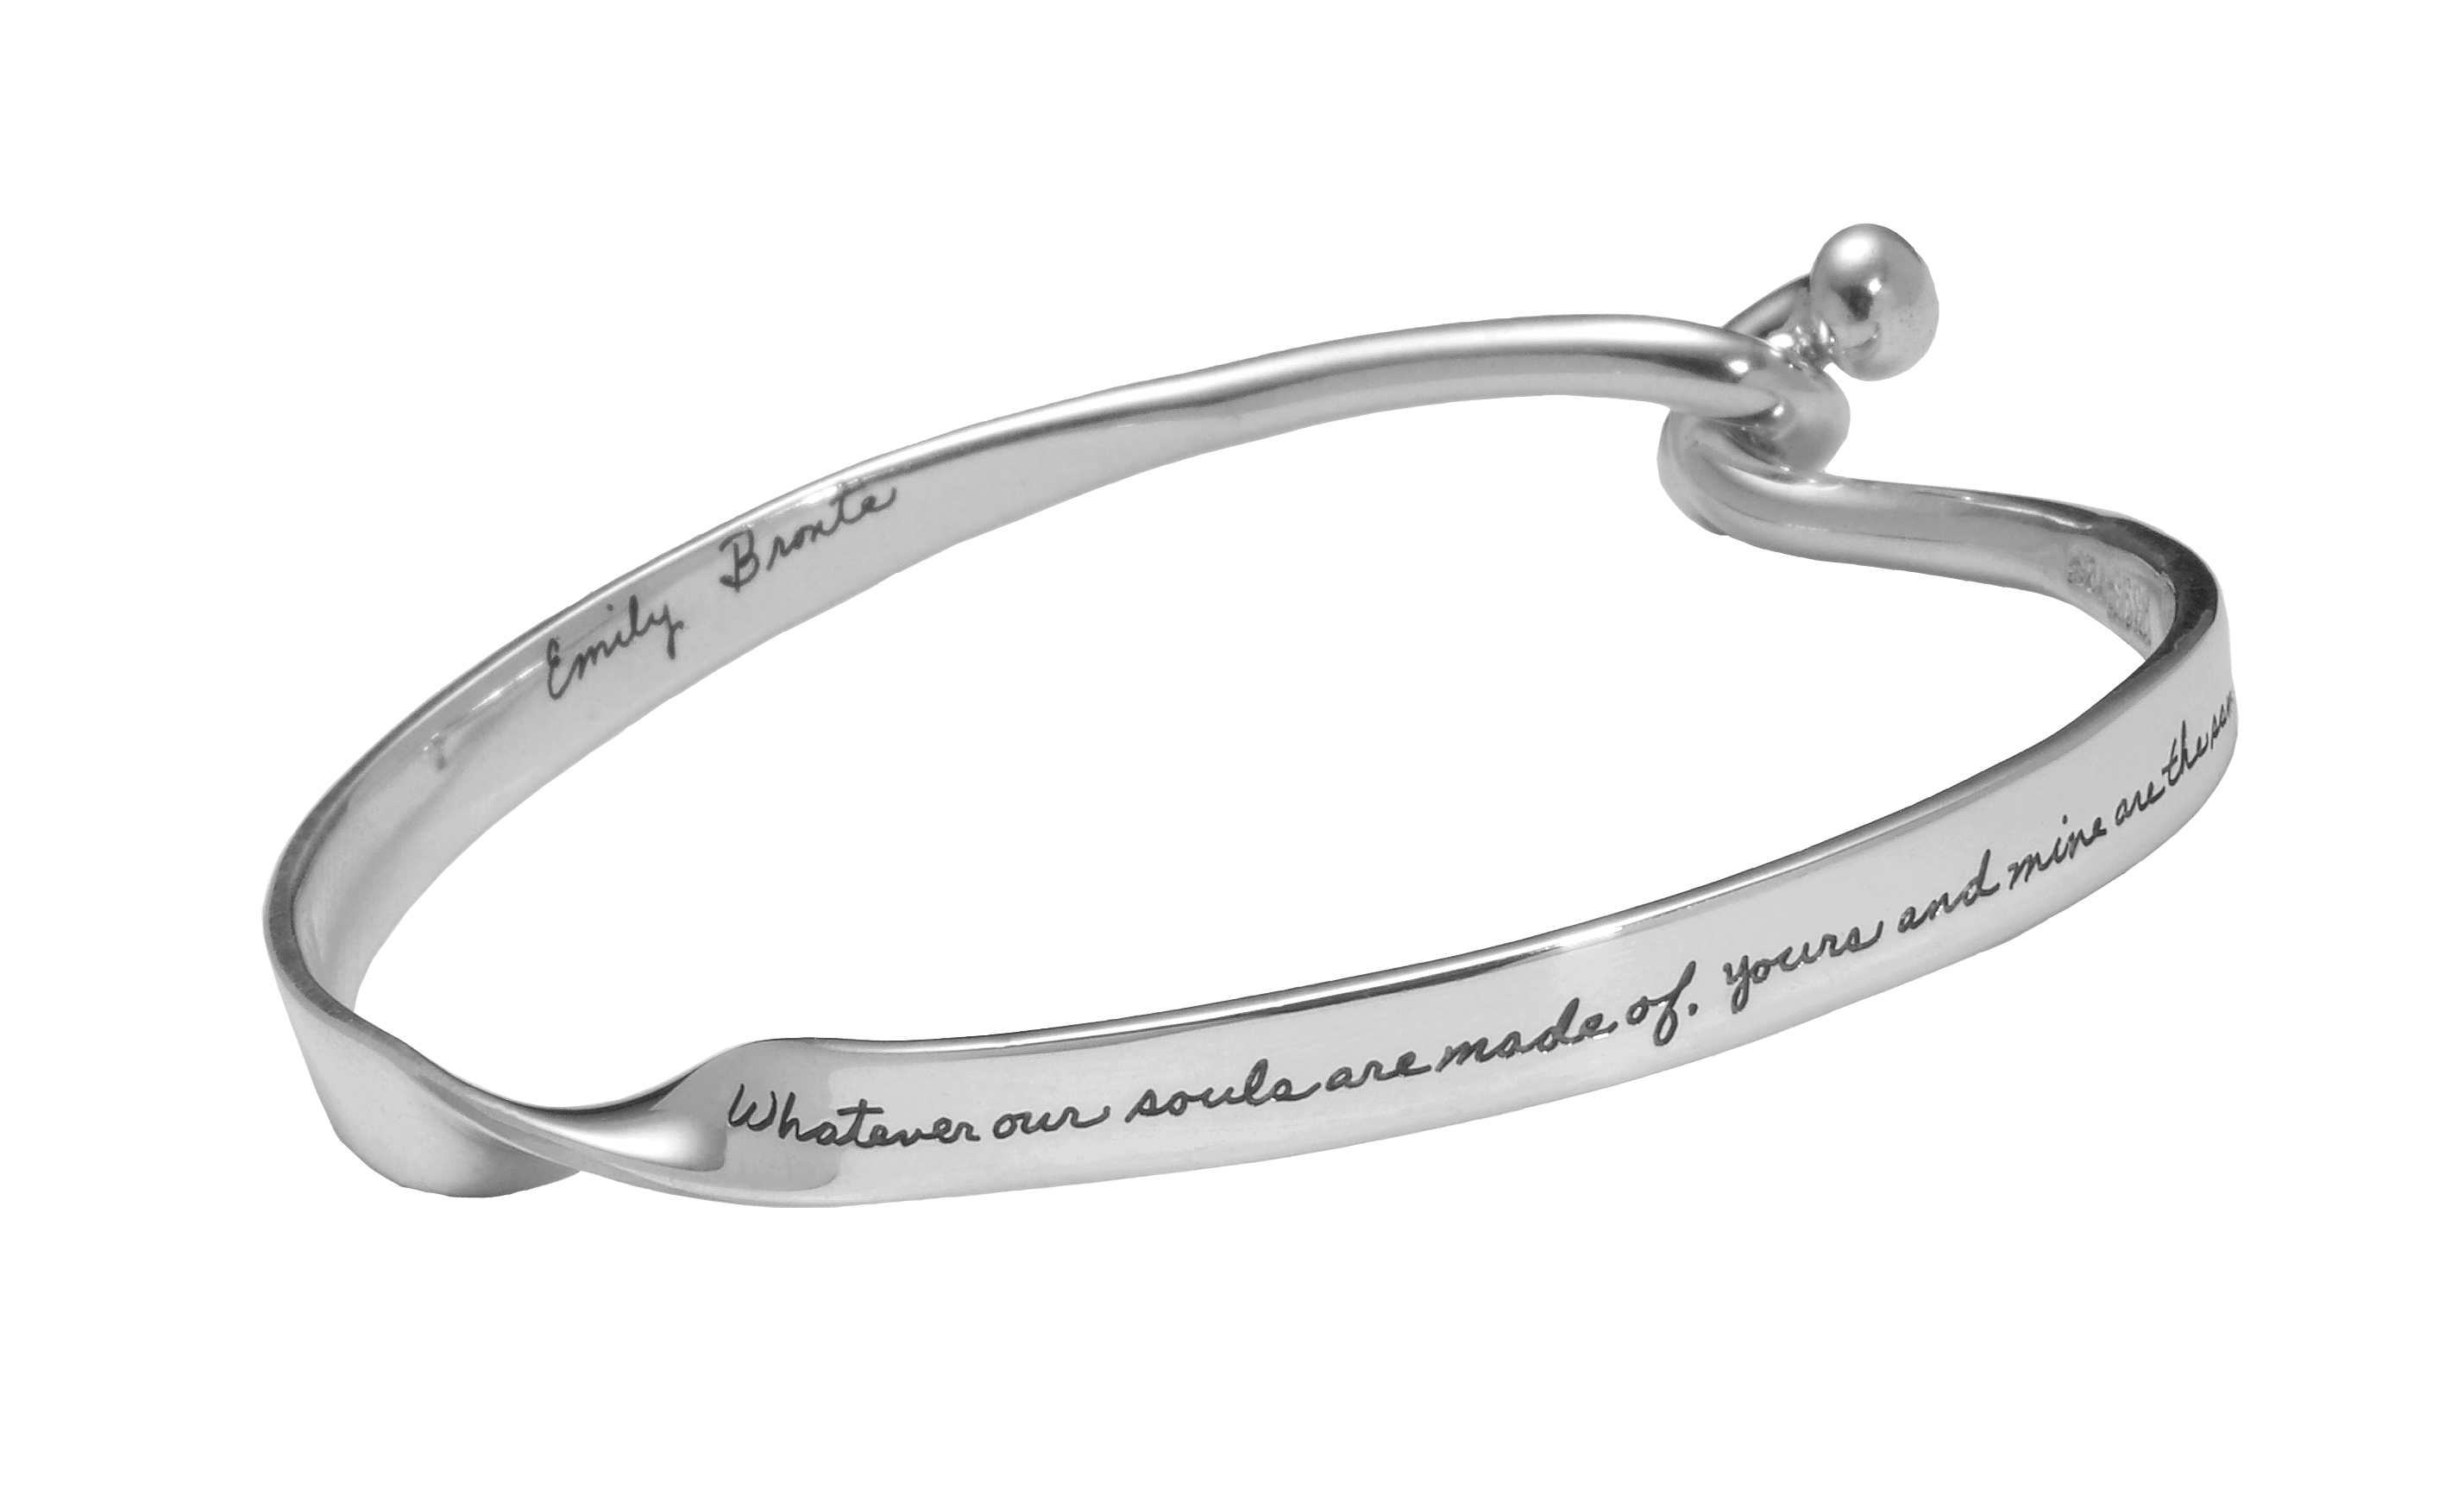 Emily Bronte's romantic quotation engraved on front and back of bracelet with two balls intertwined at closure says: Whatever our souls are made of, yours and mine are the same.